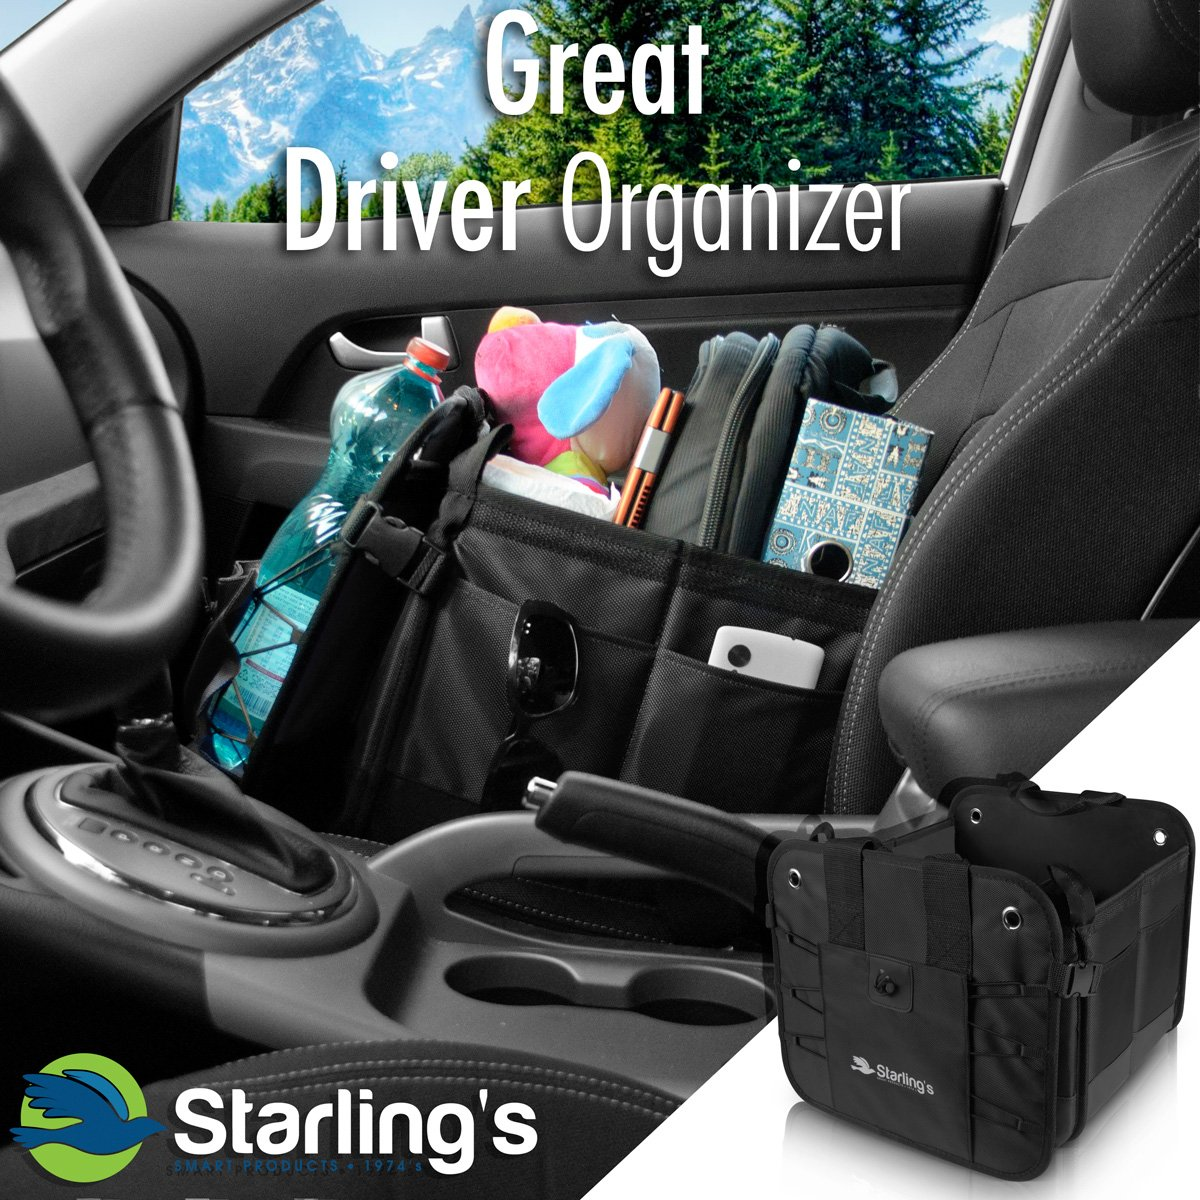 Starlings Car Boot Organiser Bags Storage Box For Auto Antislip Collapsible Waterproof Super Strong/&Durable SUV-Adjustable Compartments Truck Car Trunk Organiser Blue: Tidy Organization